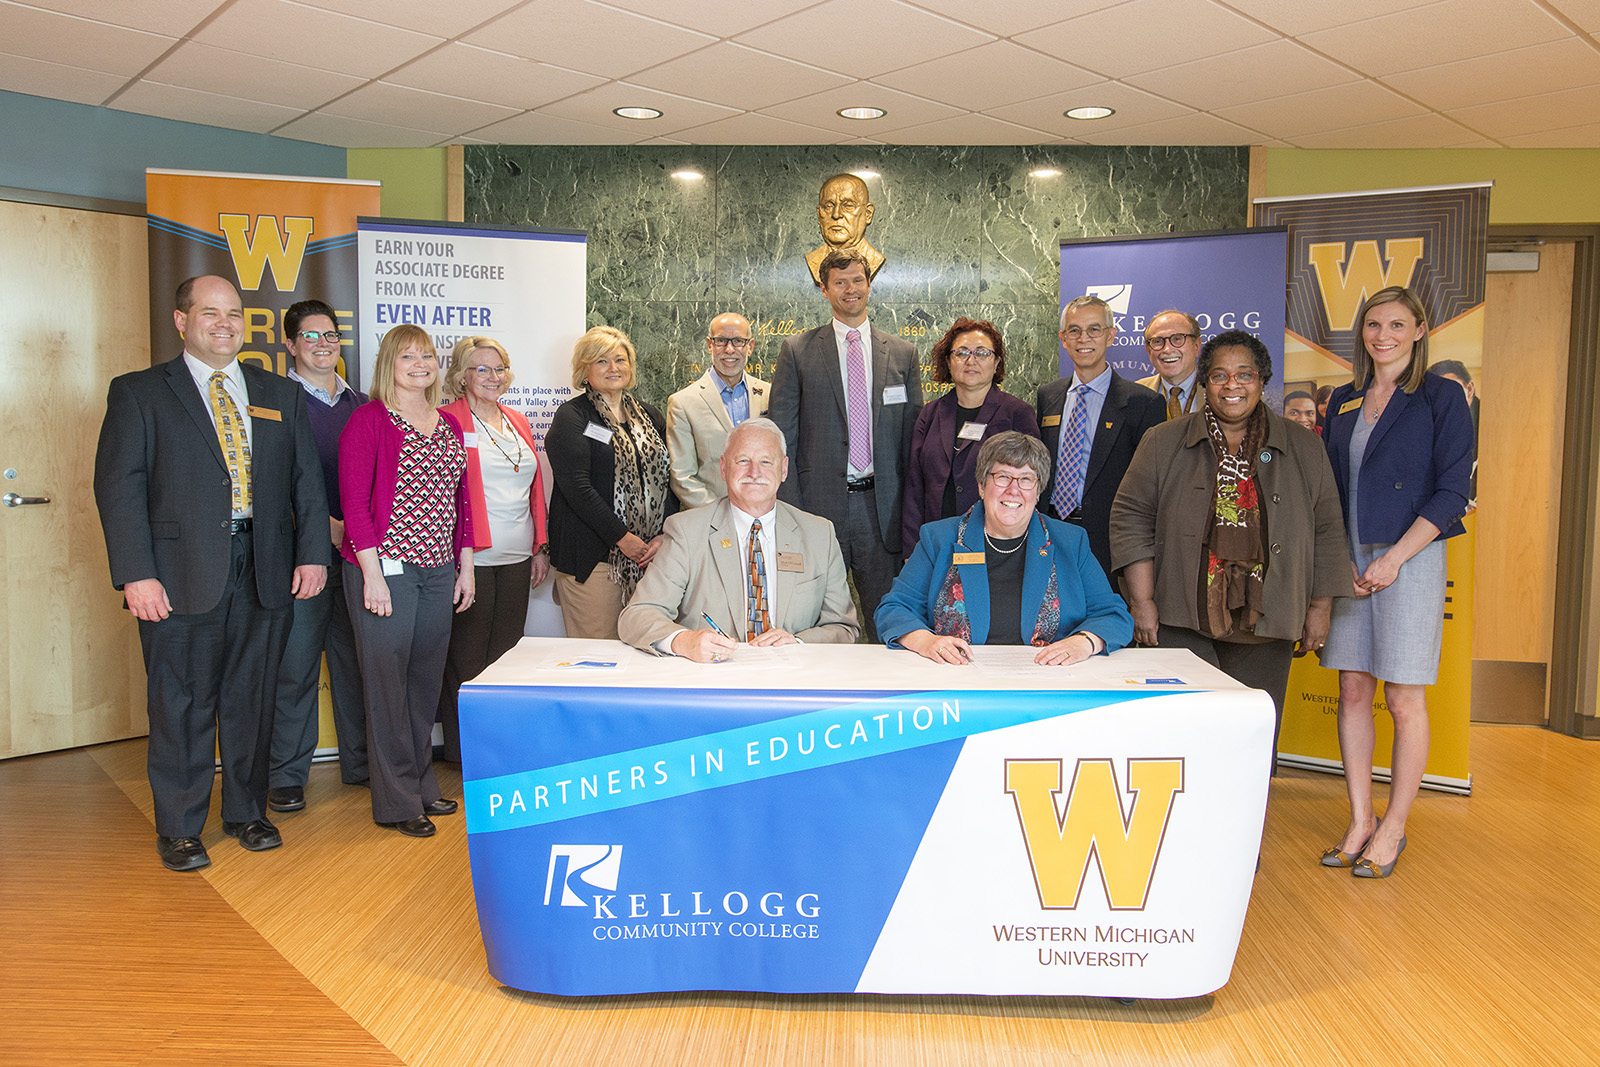 KCC President Mark O'Connell and Dr. Susan Stapleton, interim provost and vice president for academic affairs at Western Michigan University, sign a formal articulation agreement with other KCC and WMU officials in the Kellogg Room of KCC's North Avenue campus in Battle Creek on May 1, 2018.